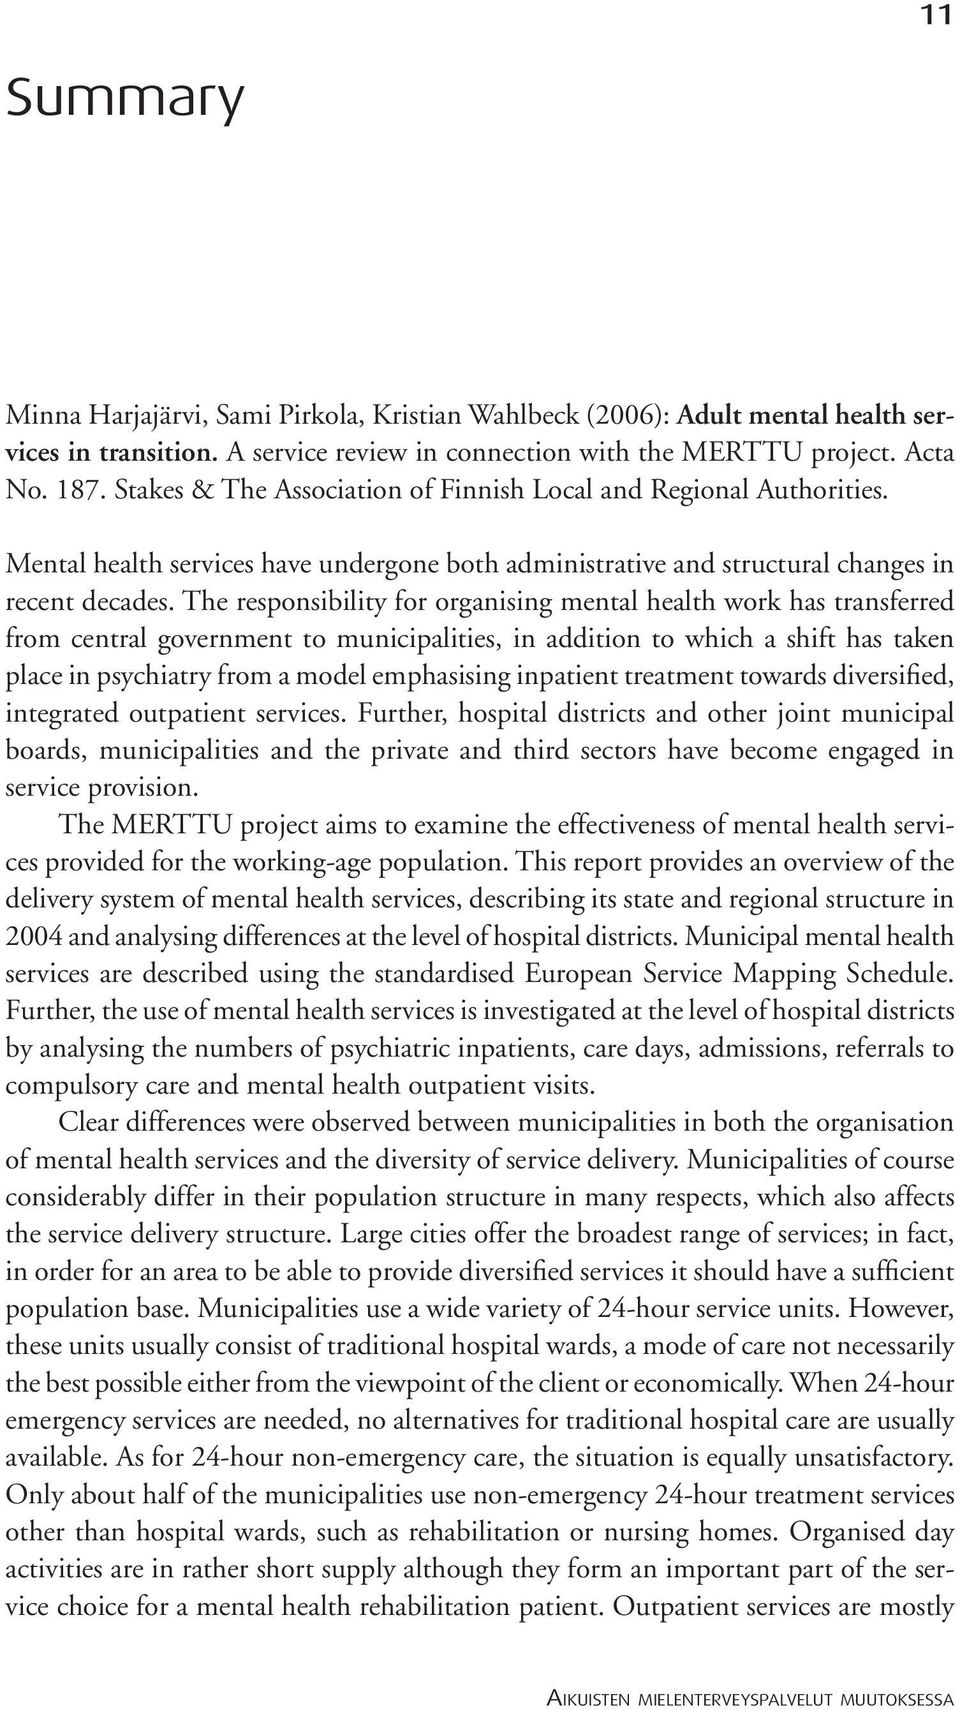 The responsibility for organising mental health work has transferred from central government to municipalities, in addition to which a shift has taken place in psychiatry from a model emphasising